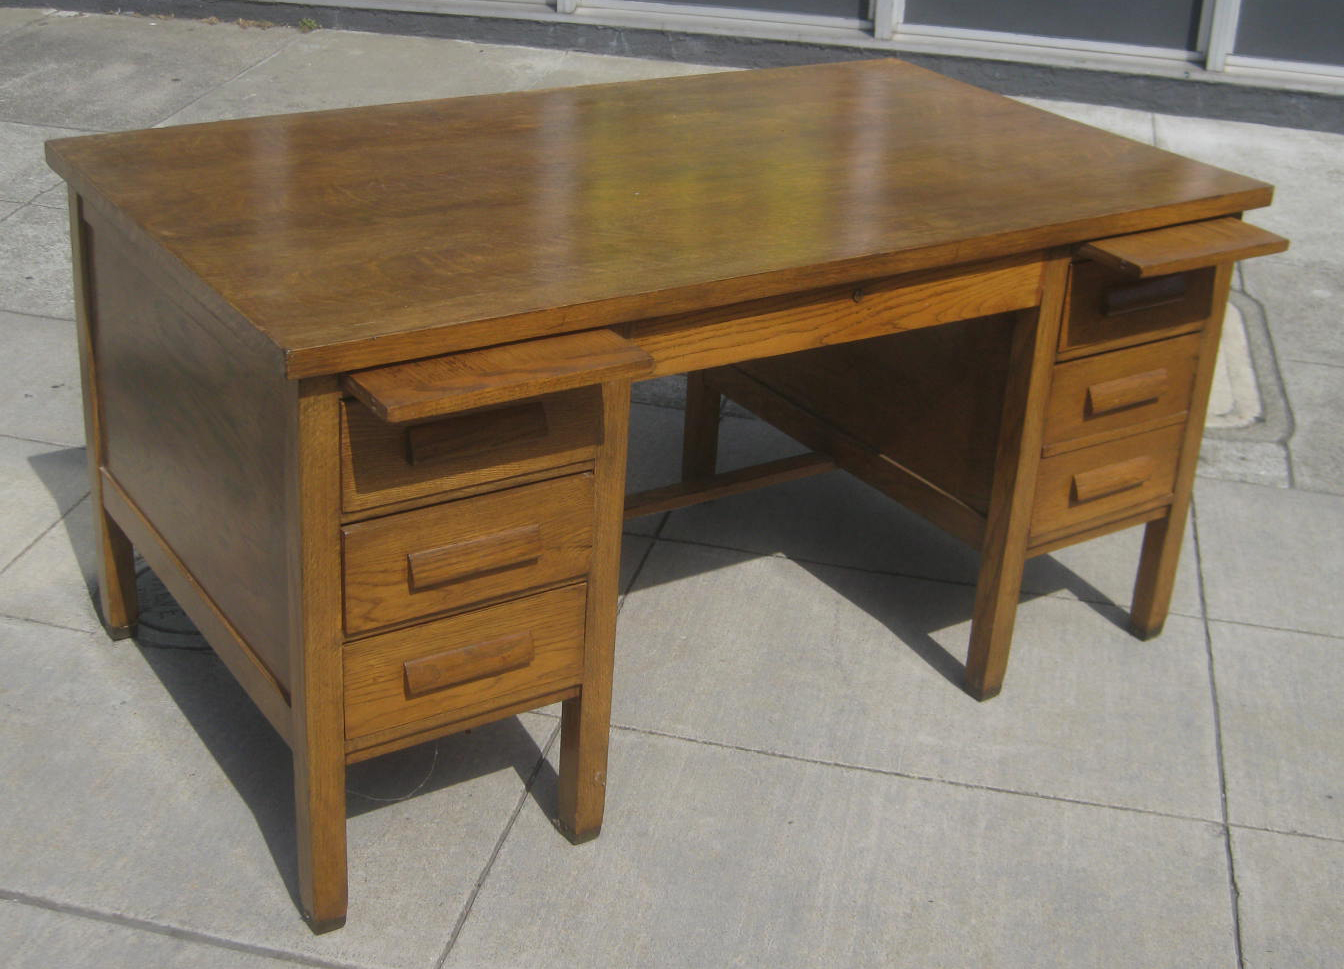 Teacher's Desk - $70 - UHURU FURNITURE & COLLECTIBLES: Teacher's Desk - $70